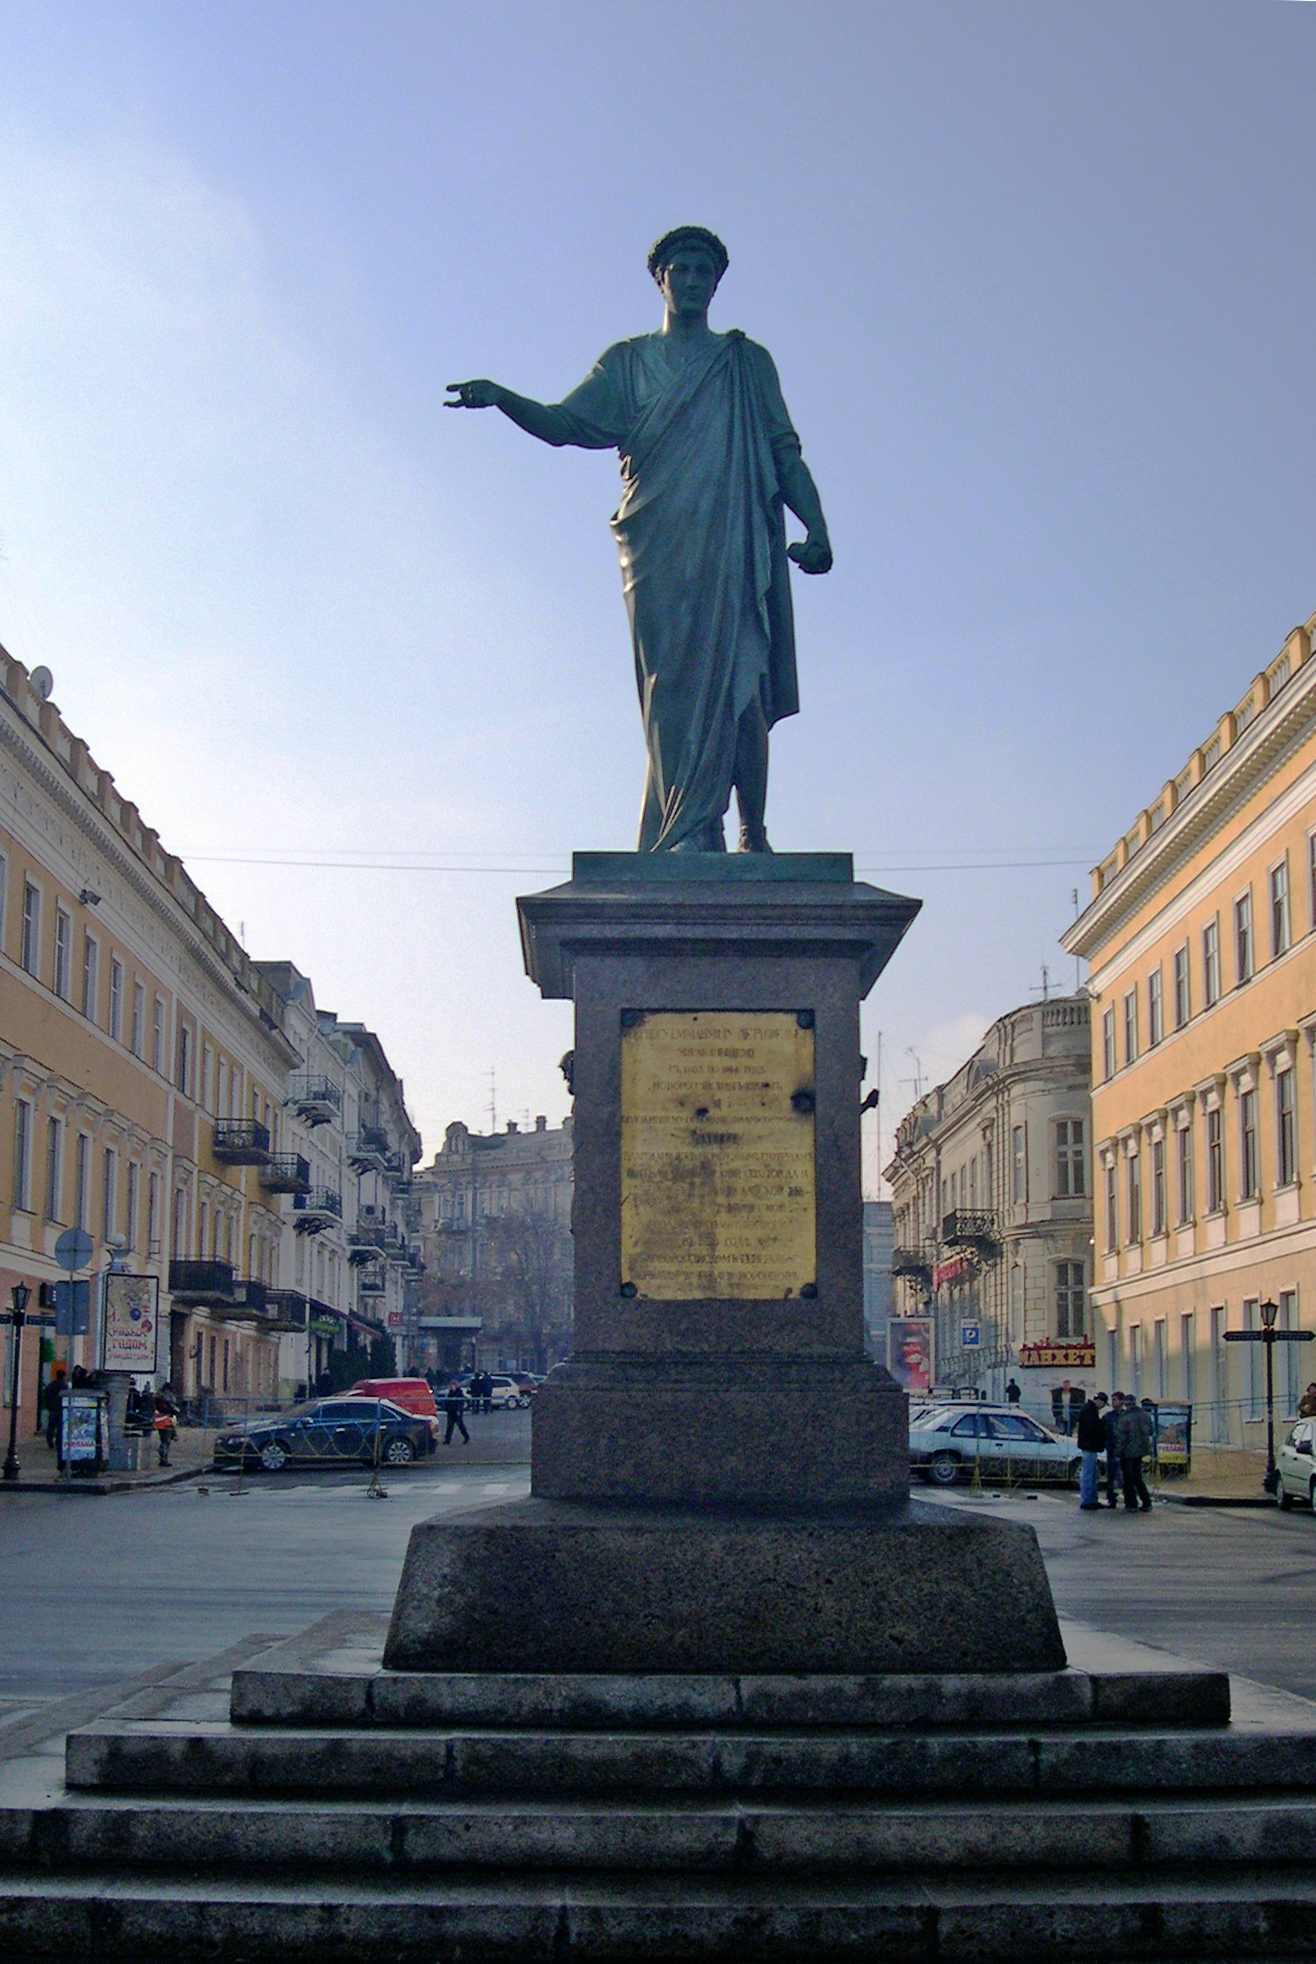 https://upload.wikimedia.org/wikipedia/commons/2/25/Ukraine%2C_Odessa%2C_Duke_statue.jpg